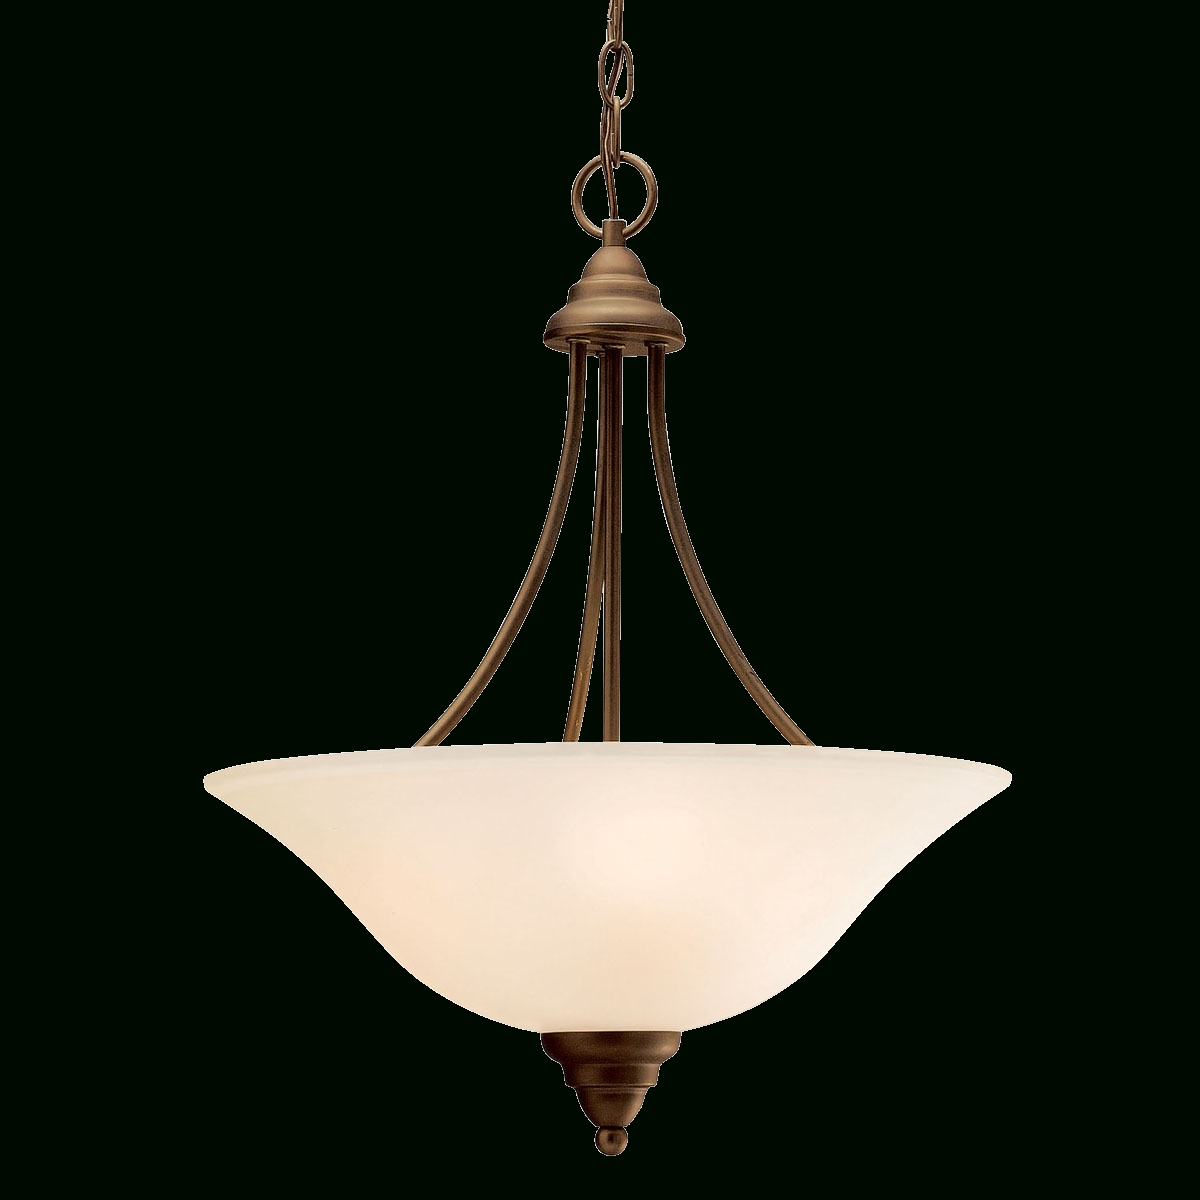 Affordable, Timeless 3 Light Inverted Pendant In Olde Bronze intended for Inverted Pendant Lighting (Image 1 of 15)